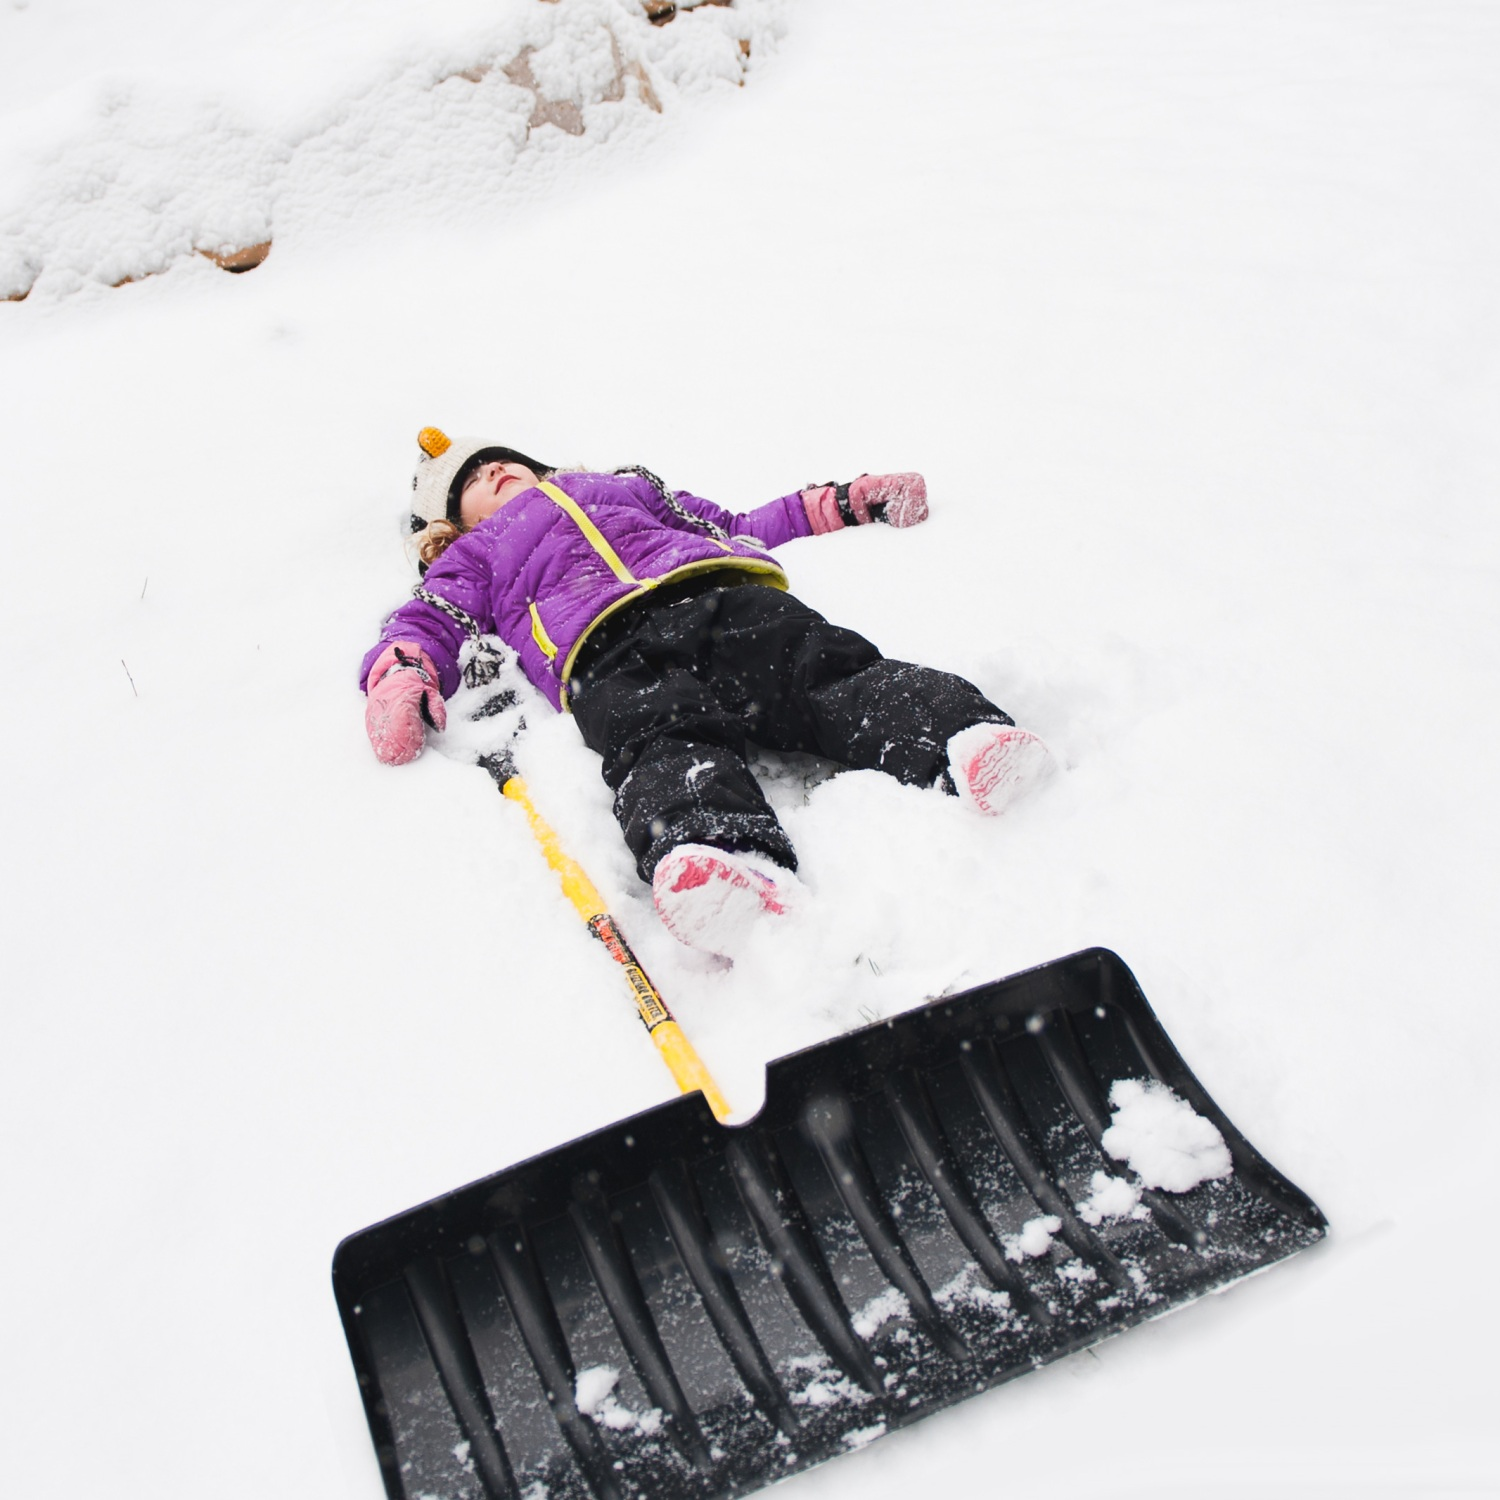 Kid lying next to shovel in snow